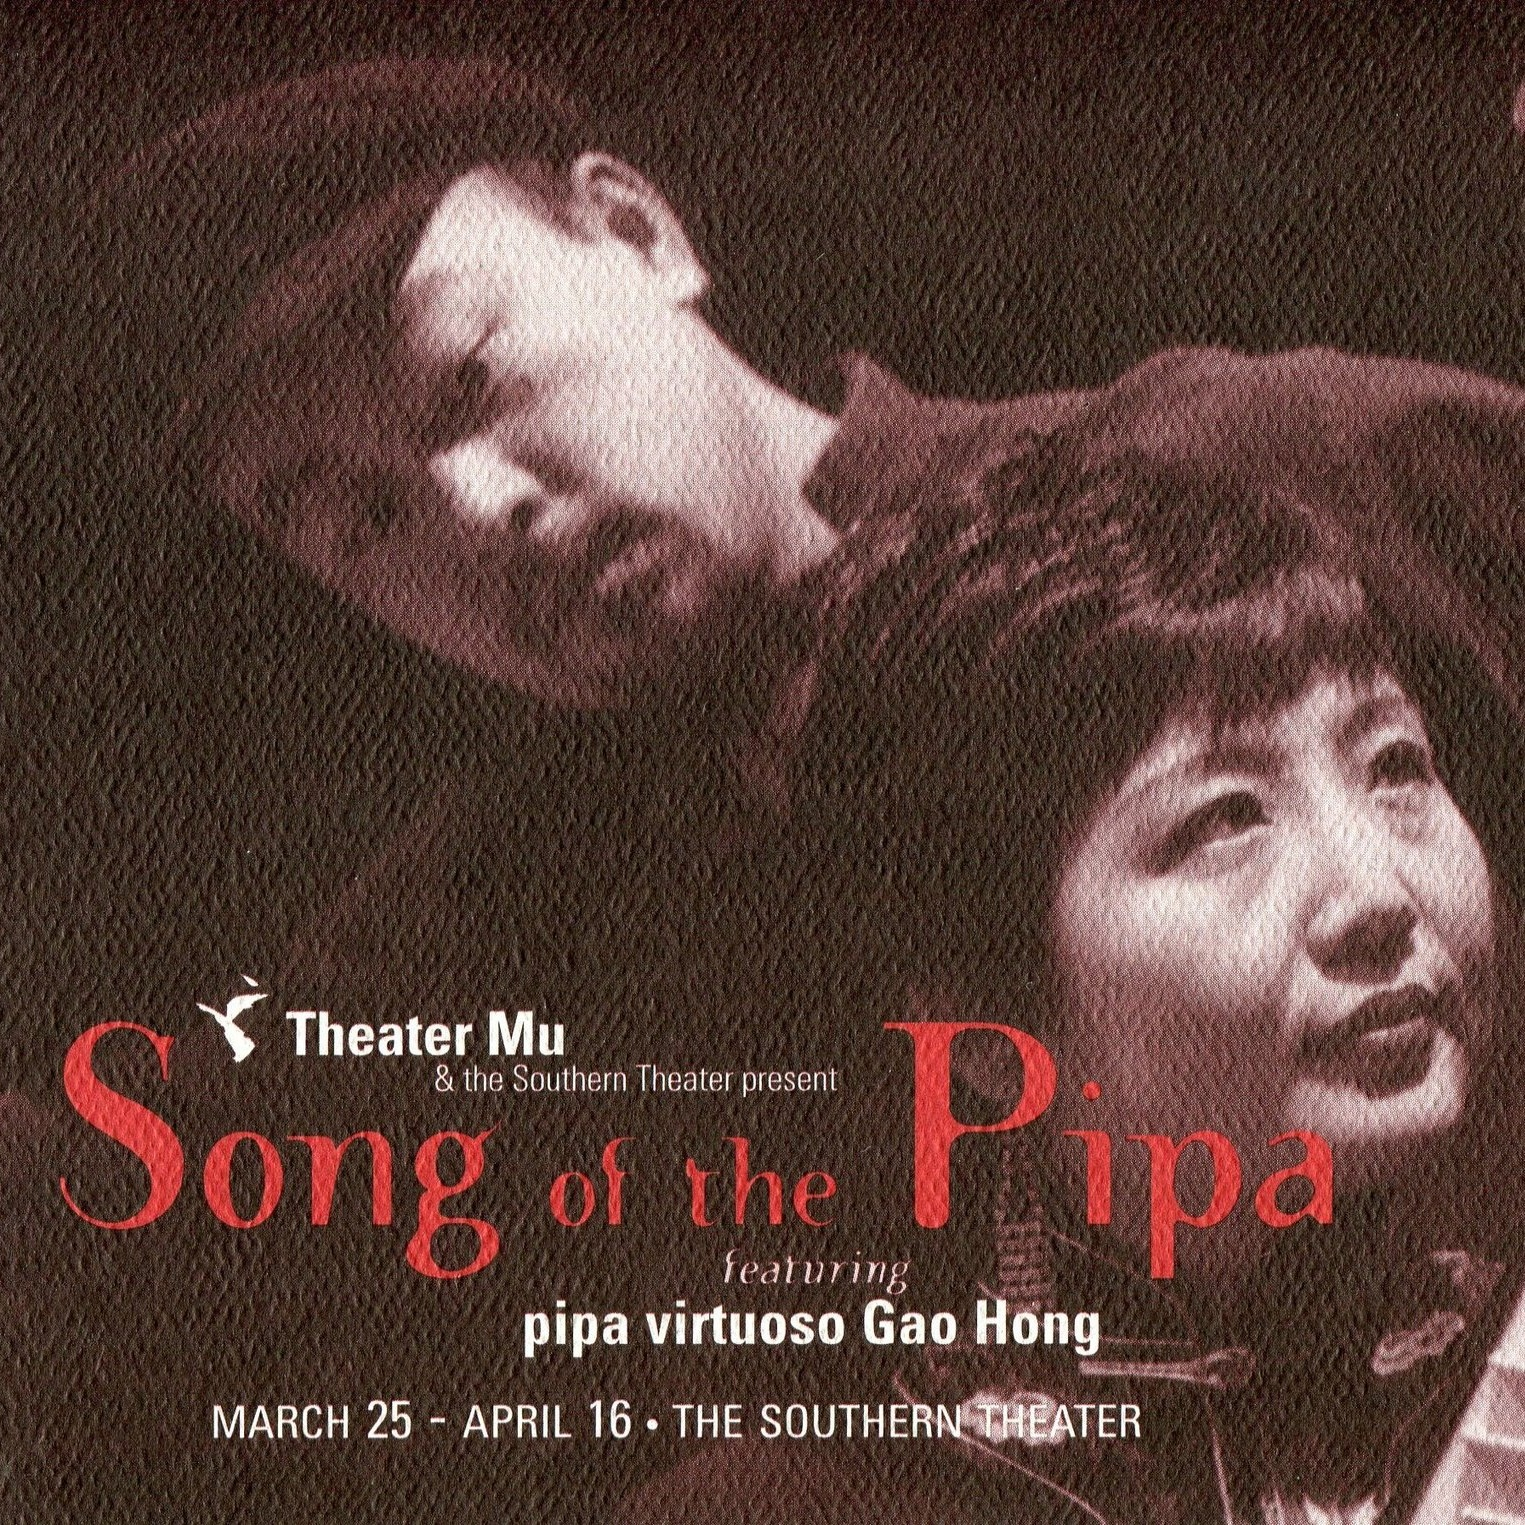 SONG OF THE PIPA - written & directed by R.A. SHIOMIMarch 25 - April 16, 2000